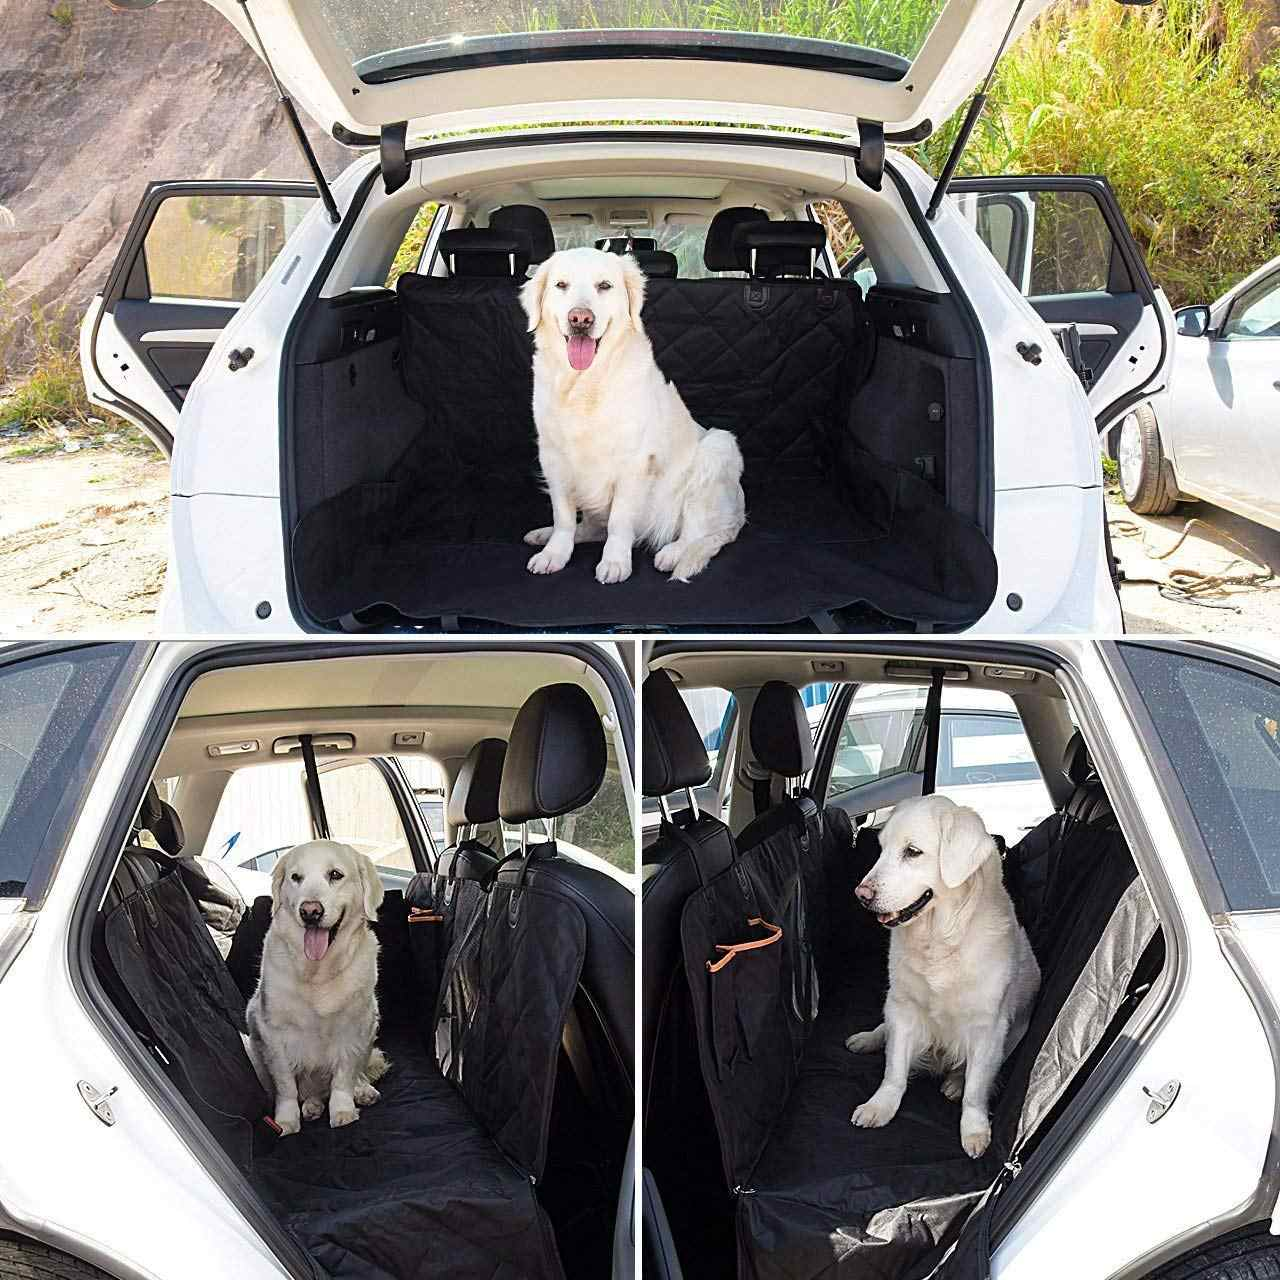 Strange Pet Seat Cover Dog Car Seat Cover With Mesh Viewing Window Short Links Chair Design For Home Short Linksinfo